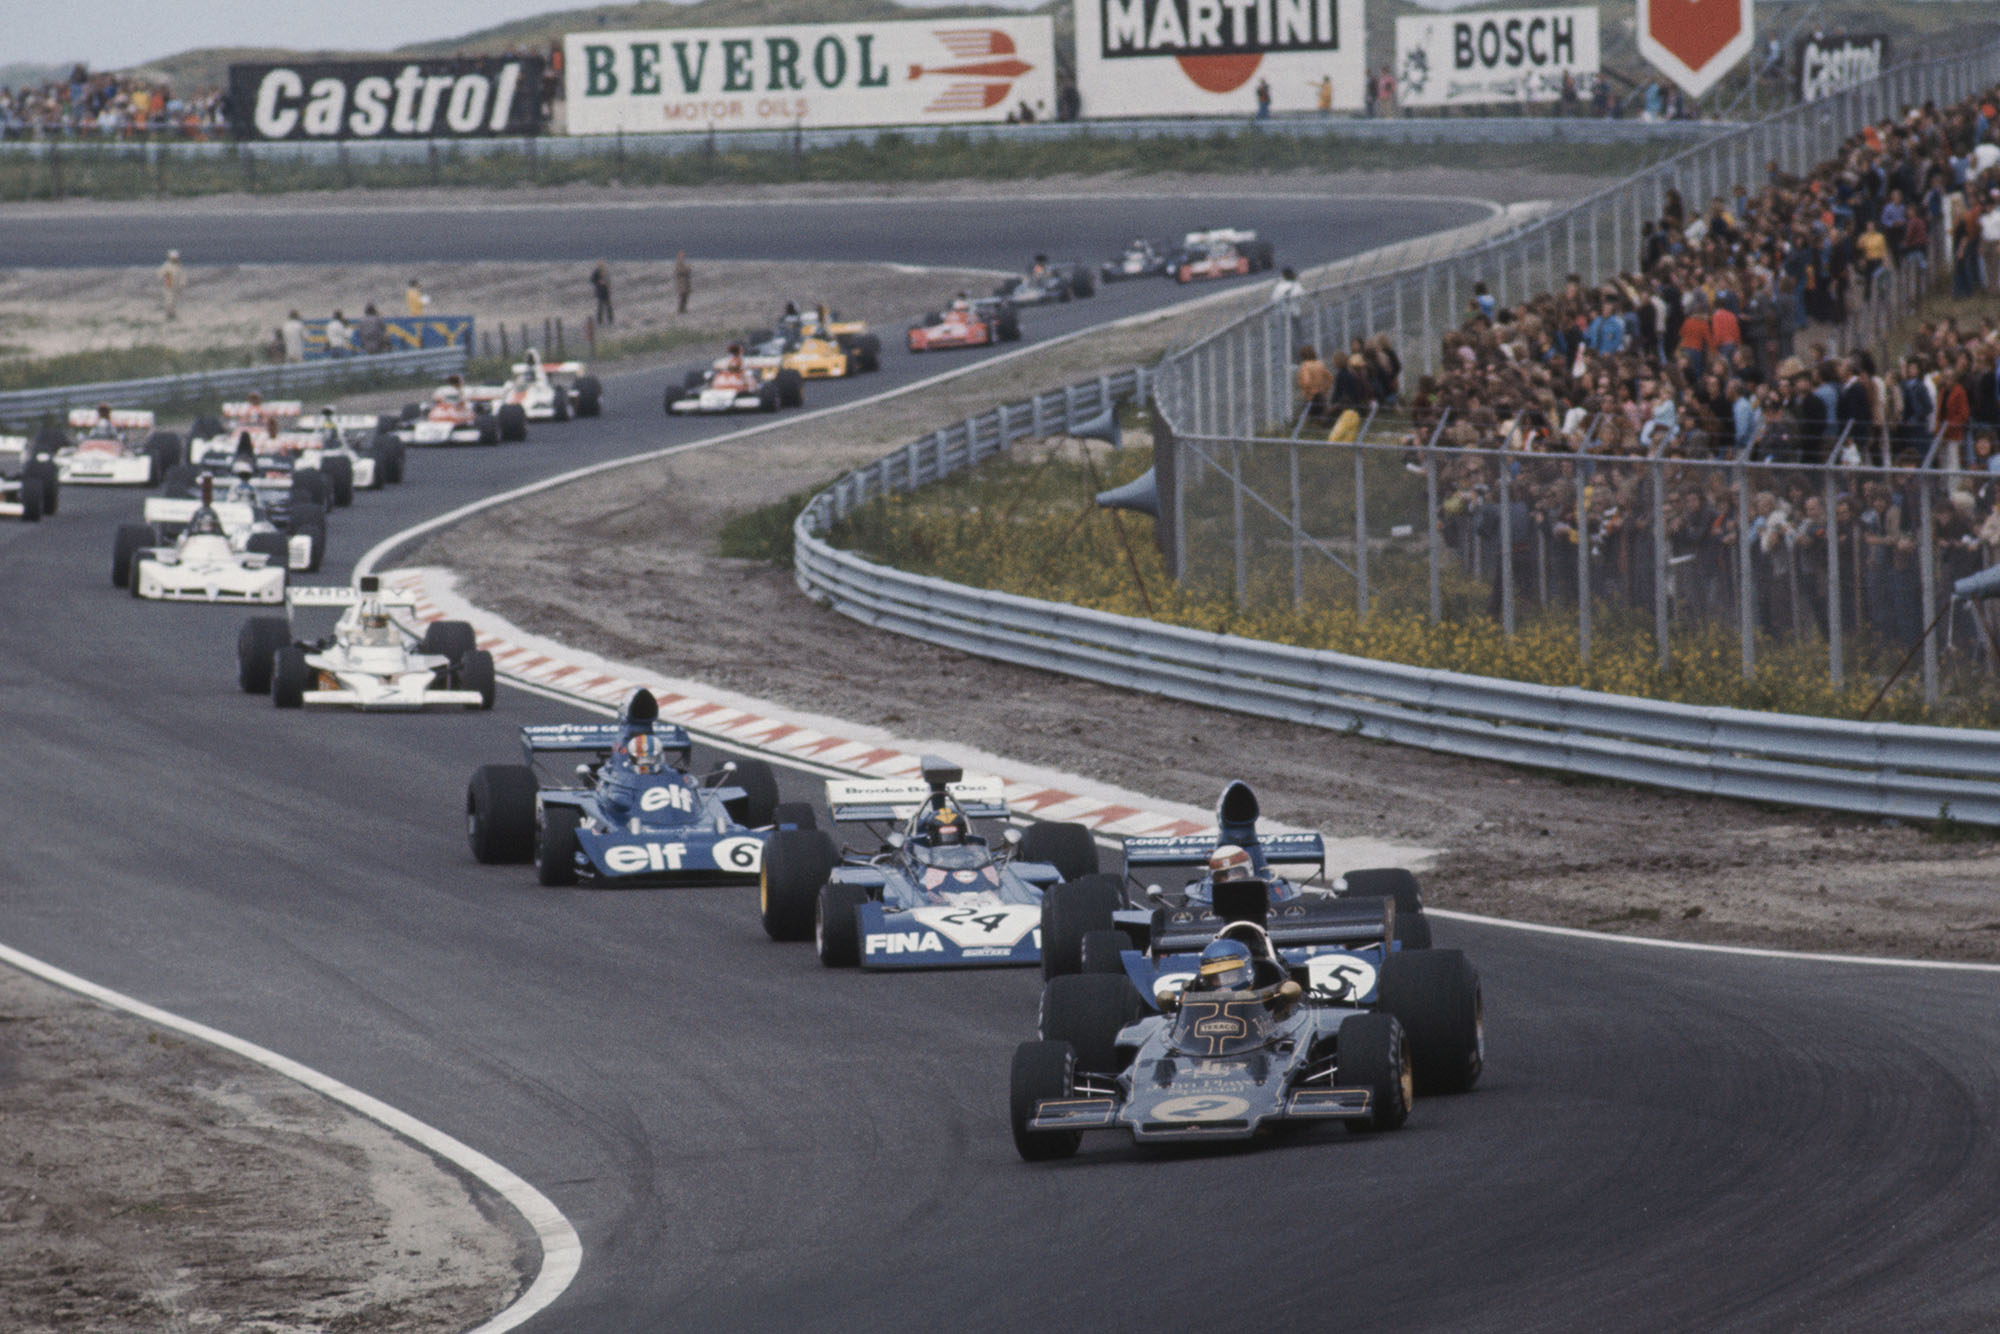 Lotus driver Ronnie Peterson leads the field on the opening lap of the 1973 Dutch Grand Prix, Zandvoort.